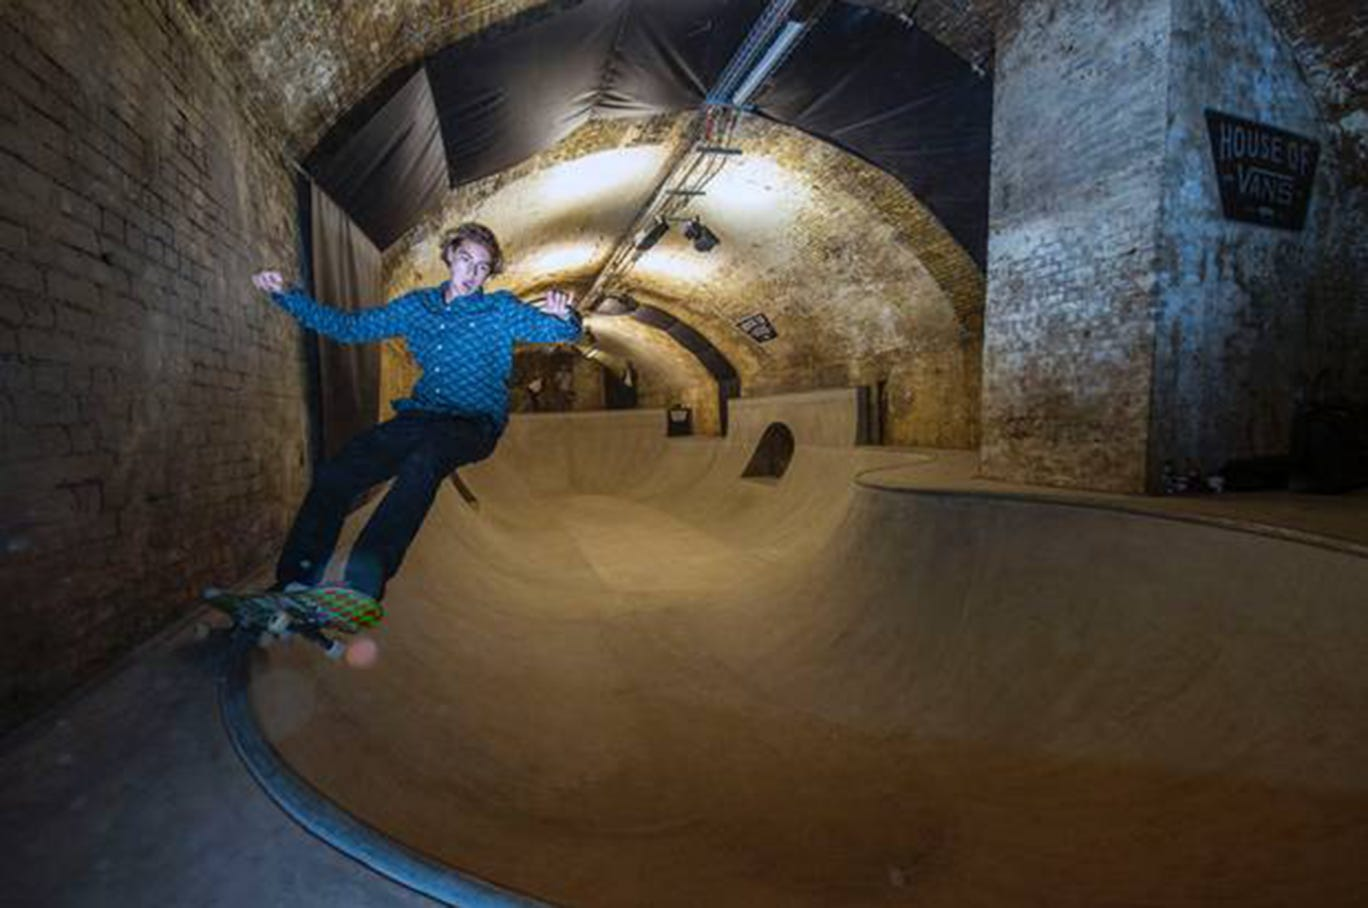 The skate park will open with a night of exhibitions and live music on Saturday